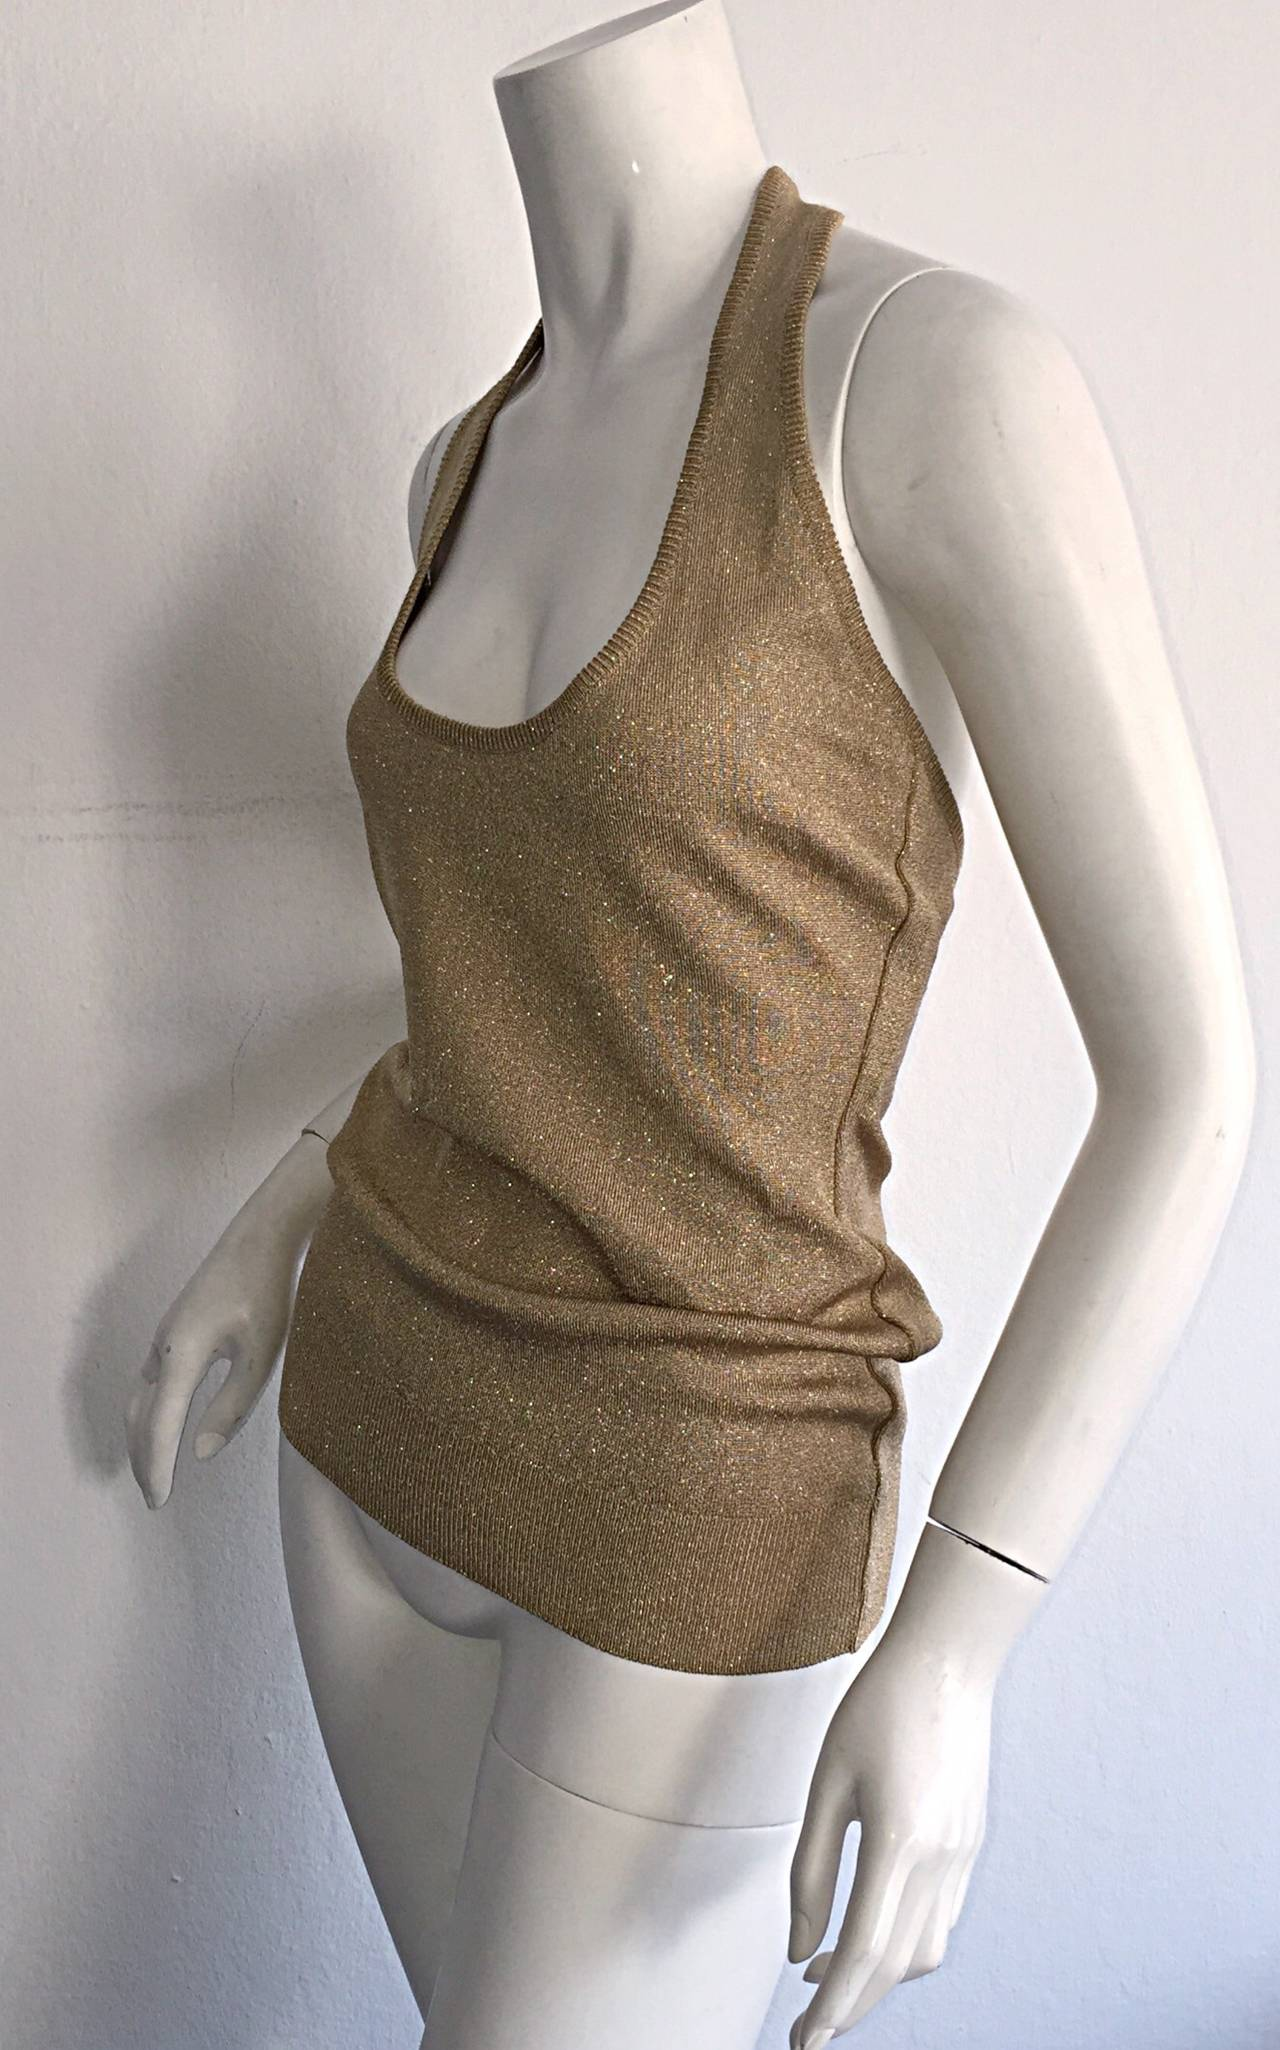 Women's Sexy Brand New Vintage Donna Karan Metallic Gold Halter Top / Blouse For Sale